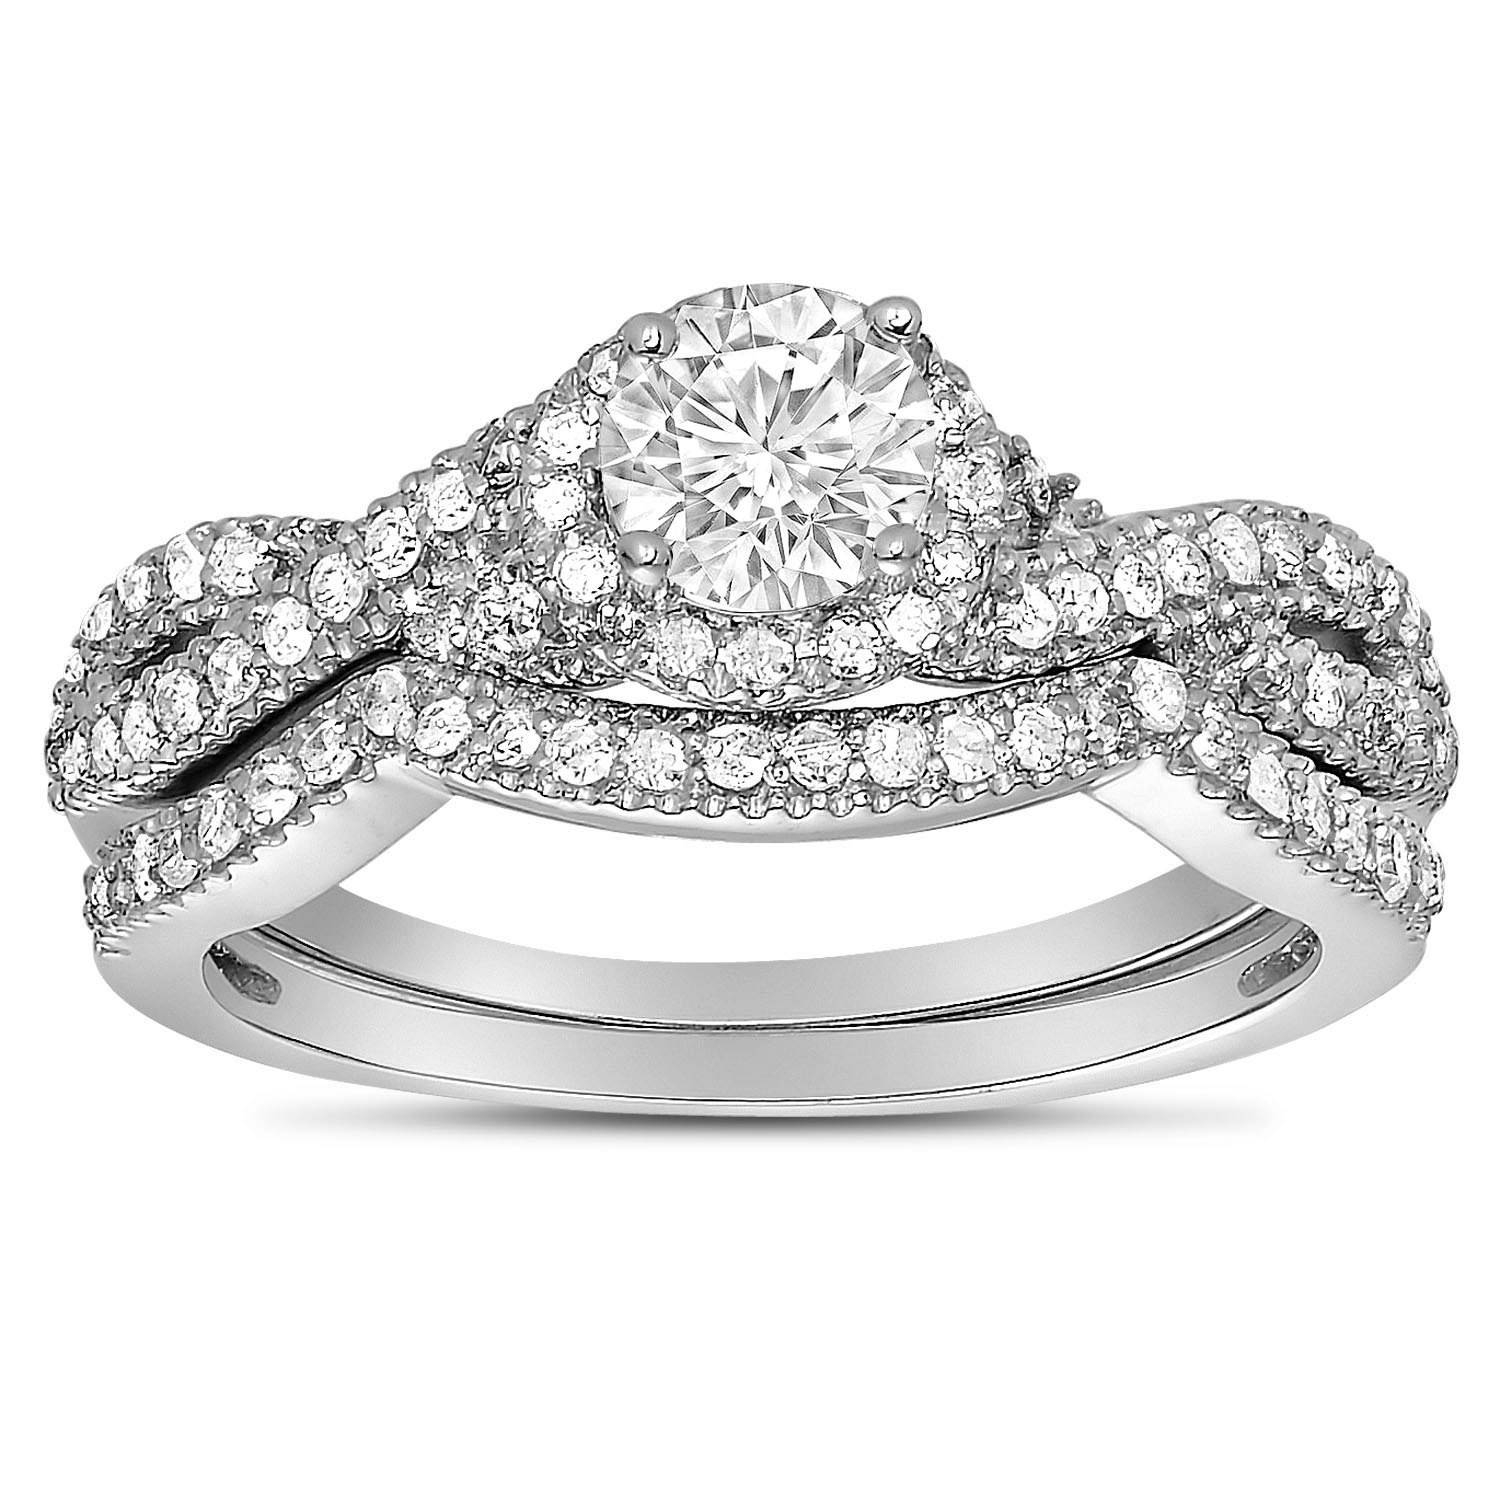 Wedding Rings : Bridal Ring Sets White Gold Wedding Ring Sets His Within Inexpensive Wedding Bands For Women (View 8 of 15)